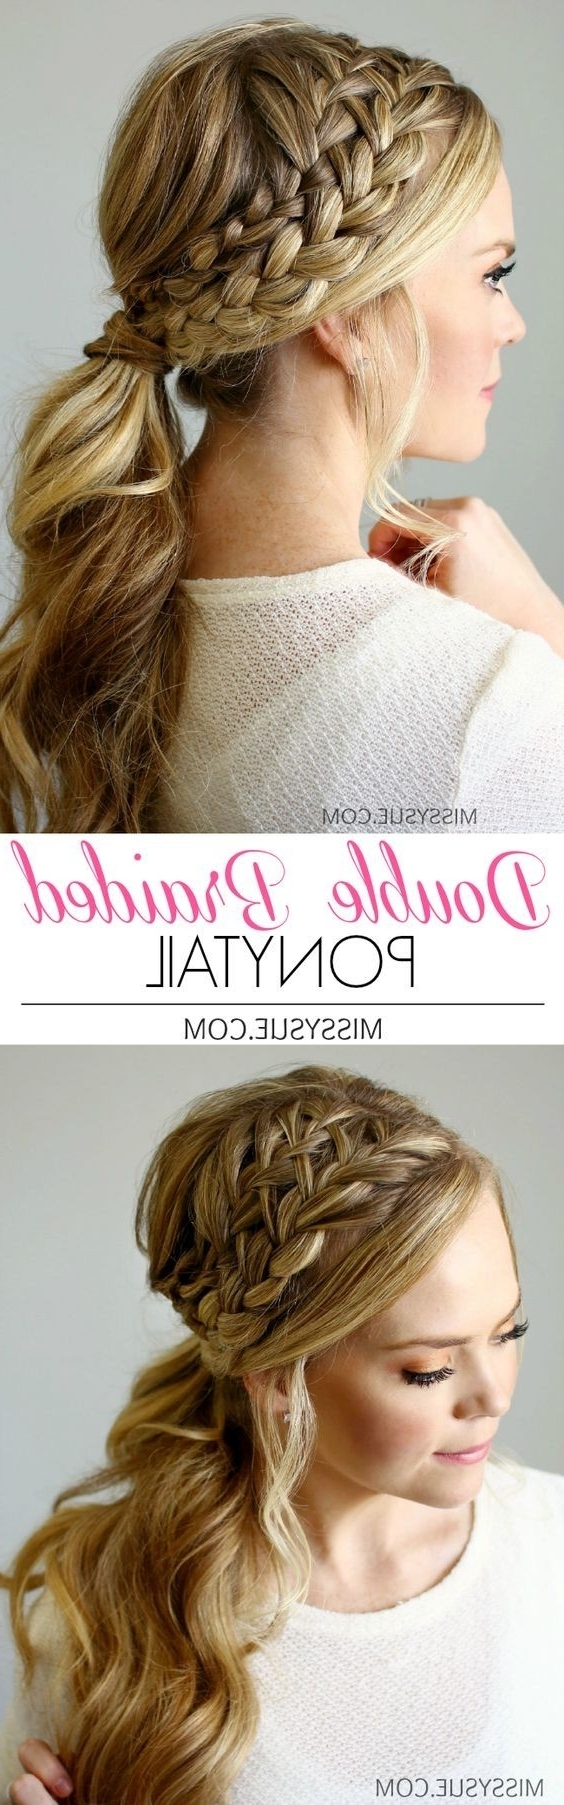 18 Cute Braided Ponytail Styles – Popular Haircuts Regarding Recent Loosely Braided Ponytail Hairstyles (View 2 of 20)